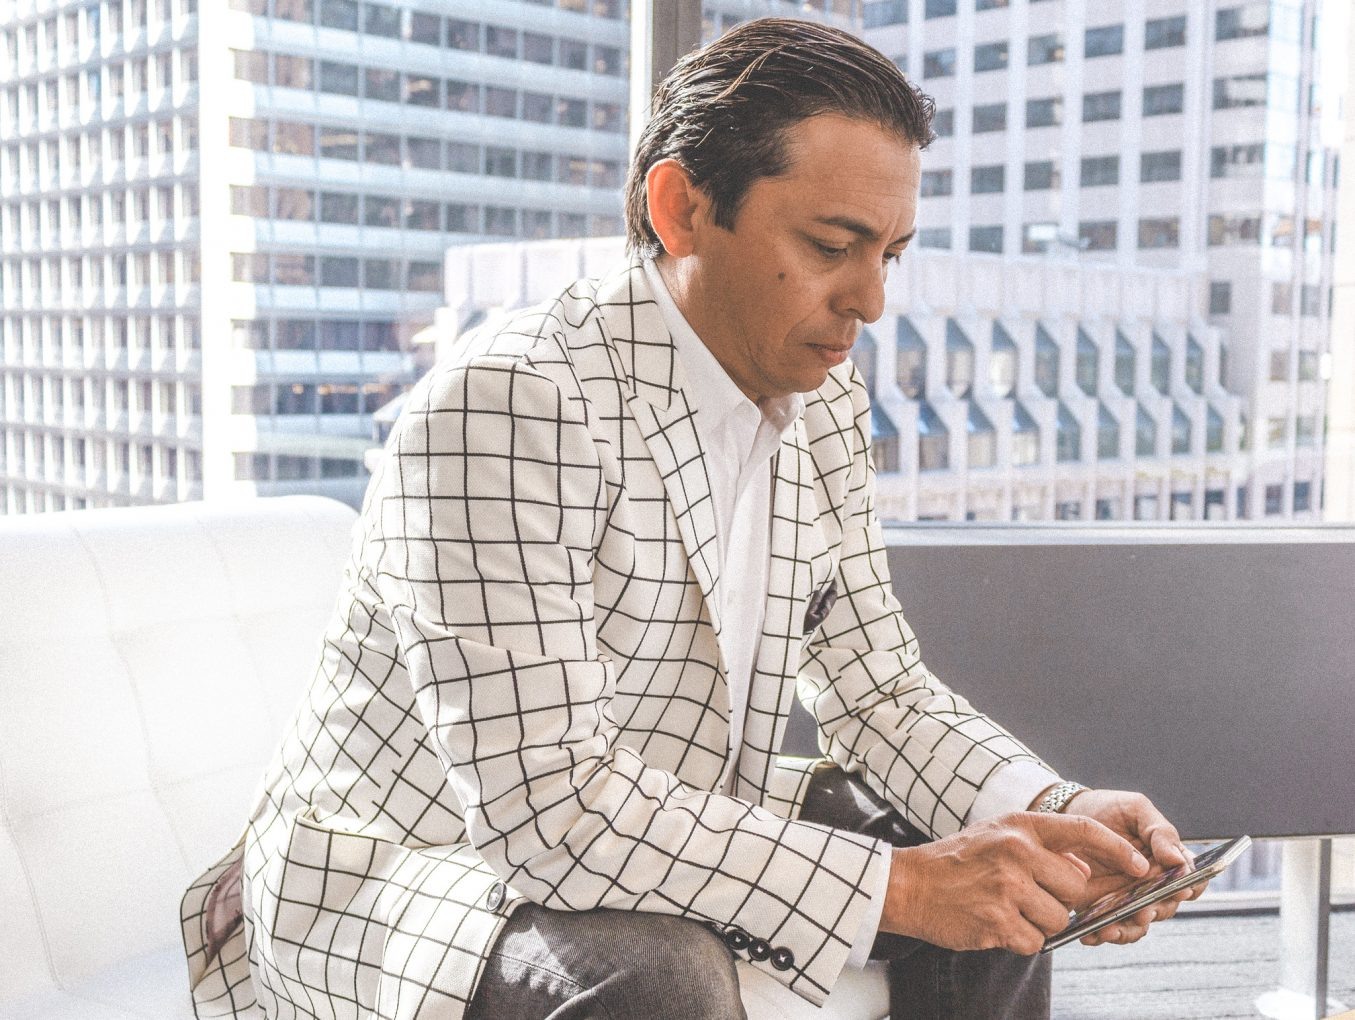 Brian Solis: Creativity, Productivity, and Happiness - The Price We Pay for Our Distractions